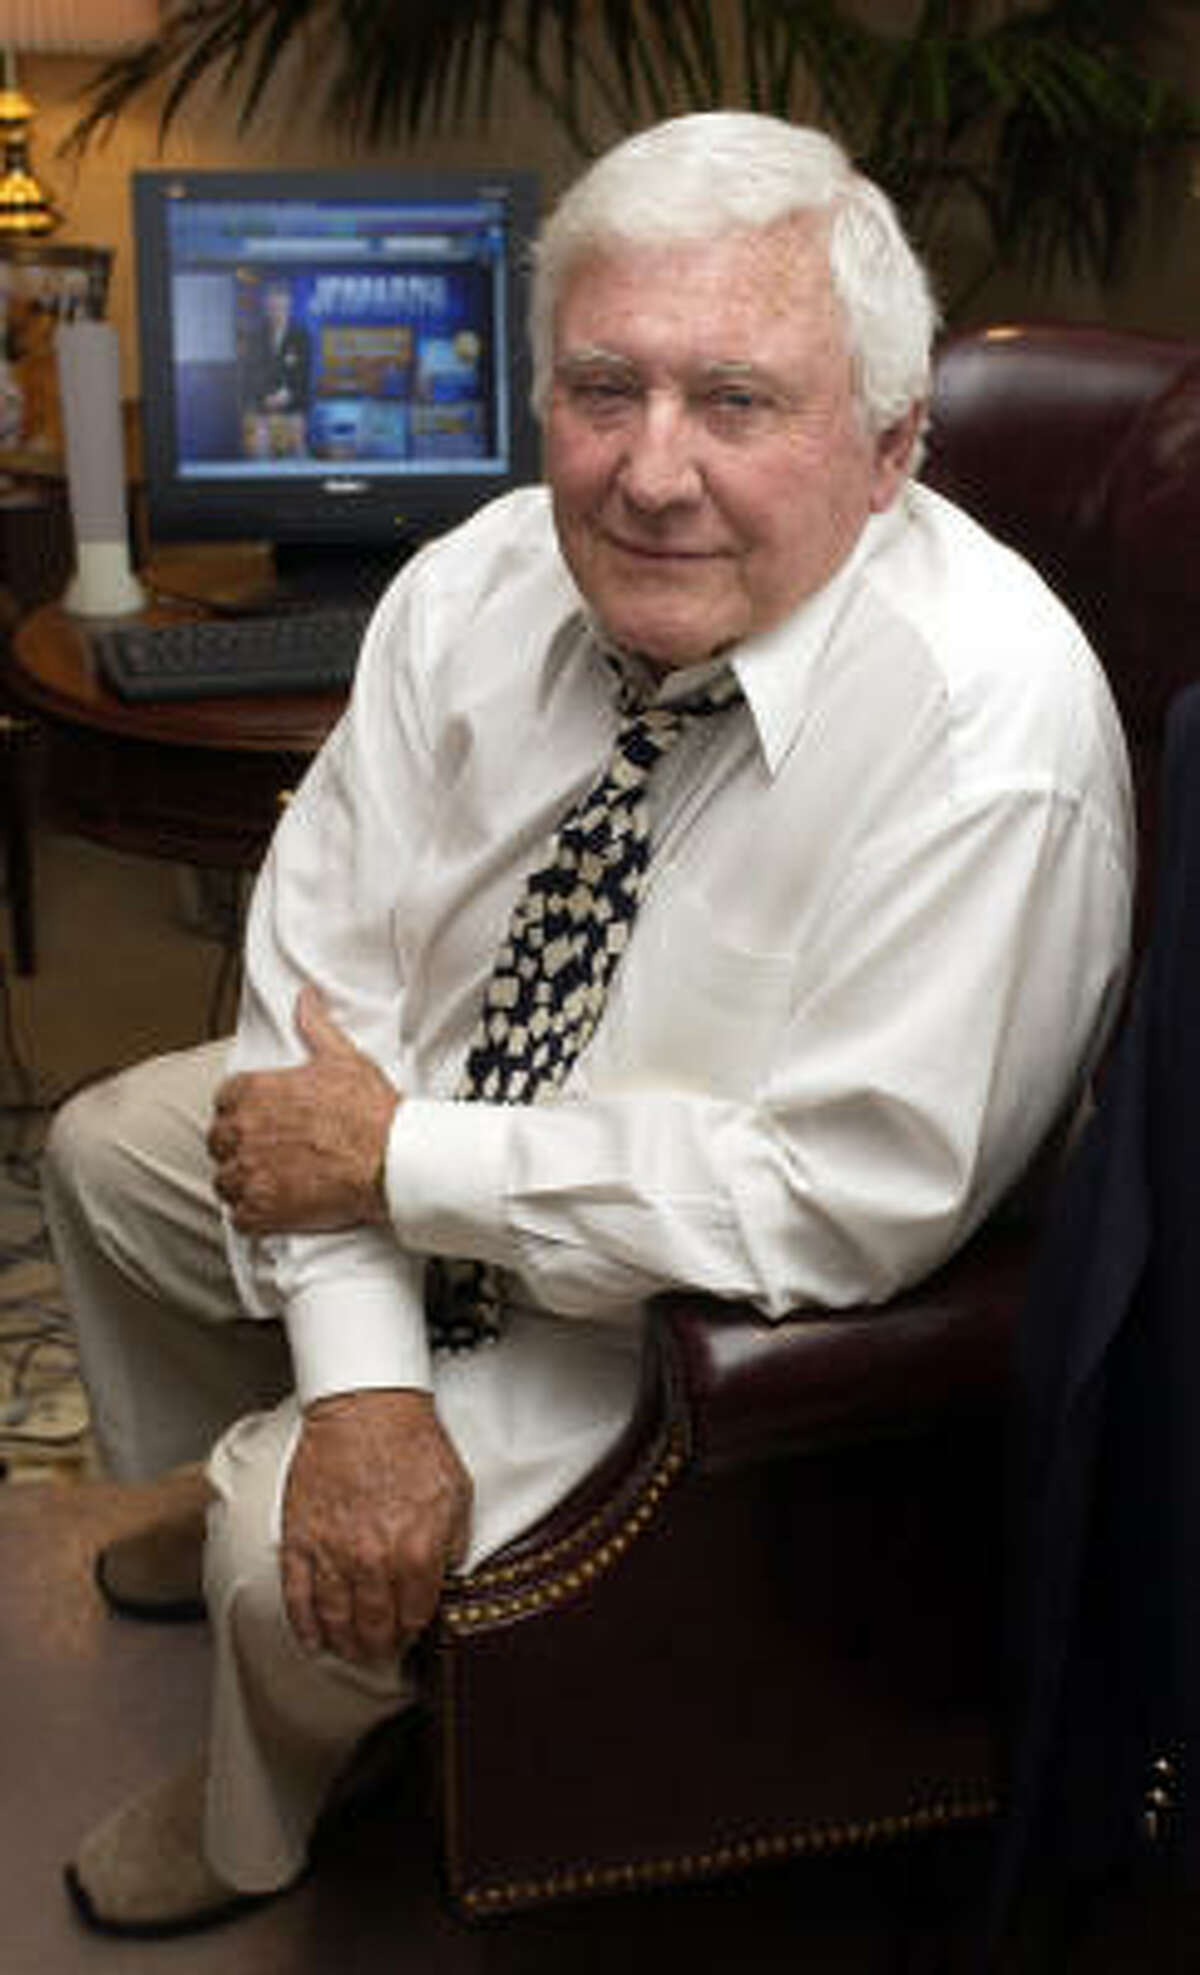 Who is Merv Griffin? The creator of the show decided in 1964 that it was time to revive the quiz show, which had fallen into bad repute. He devised the answer-and-question format. He also composed that earwormy theme music, called